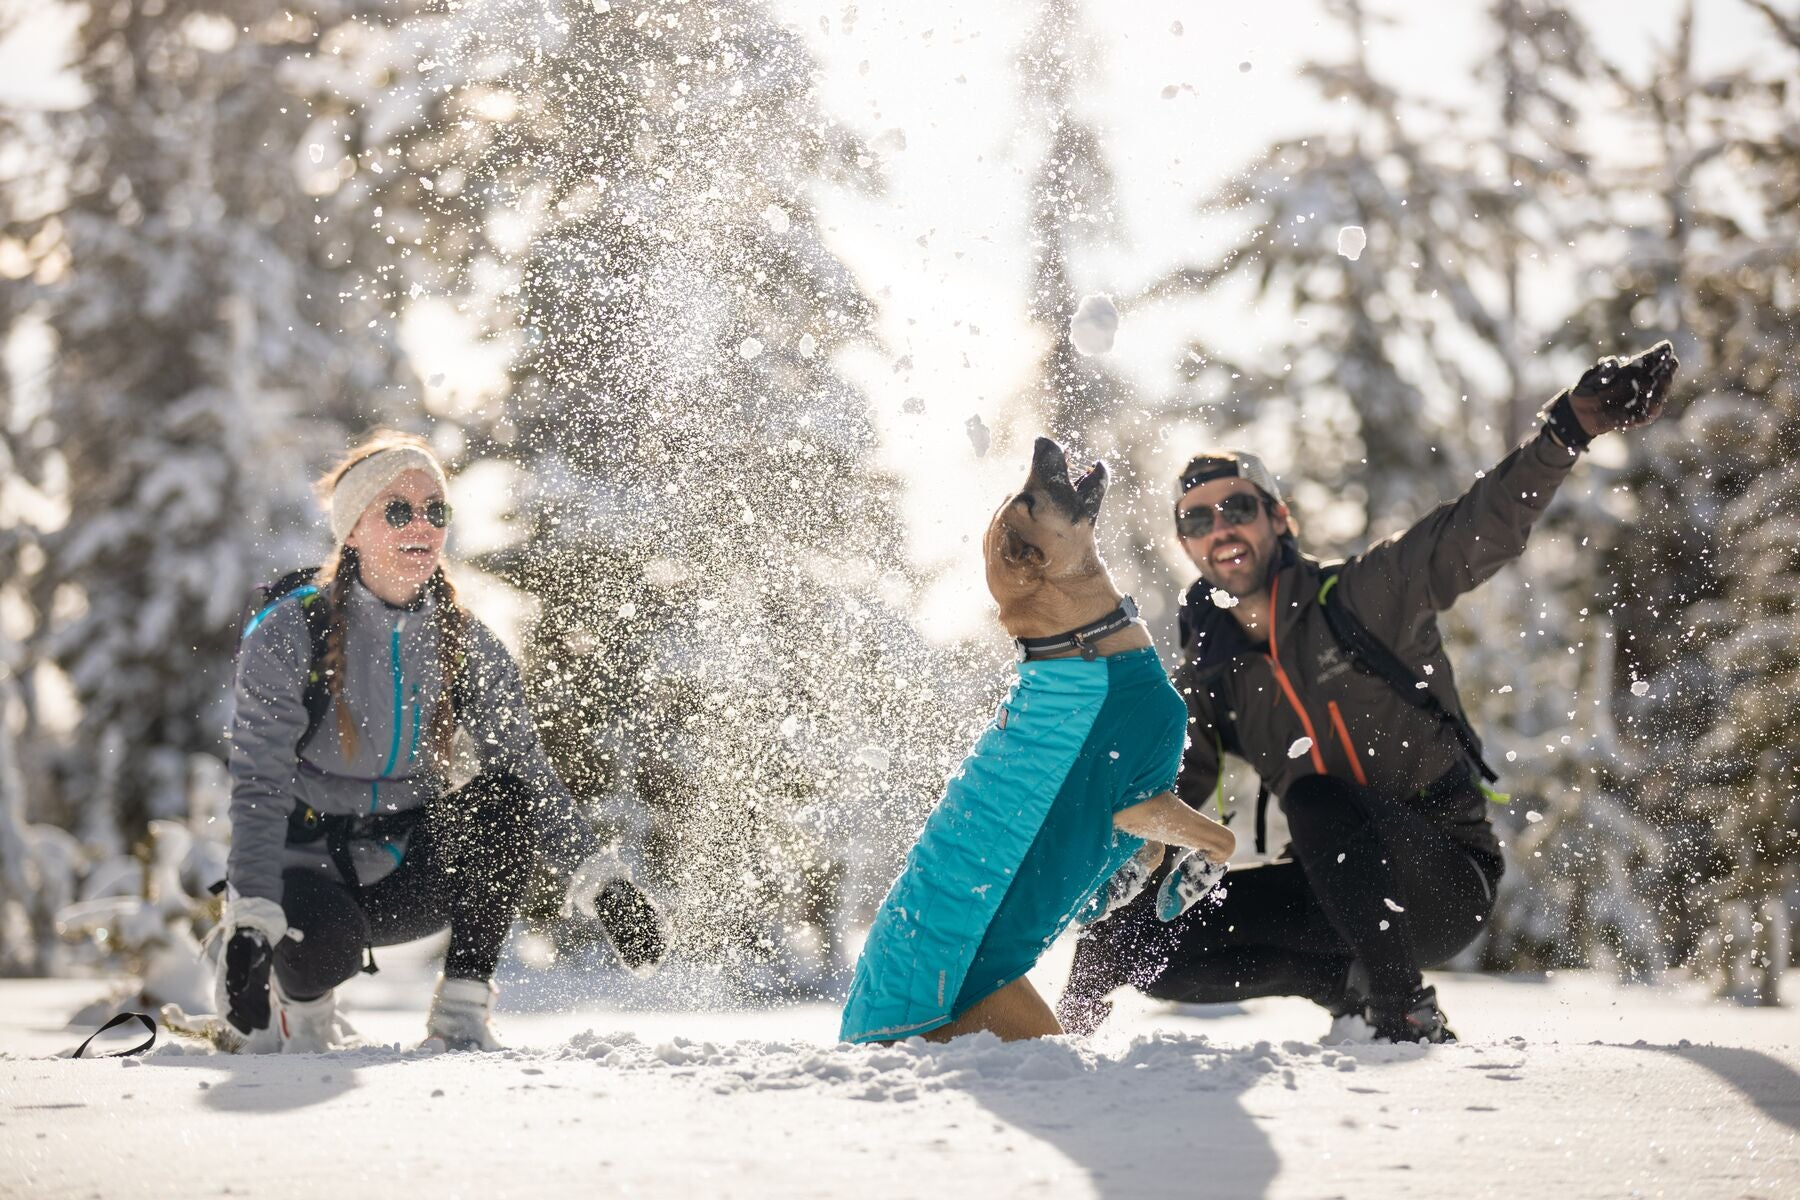 Dog in powder hound jumps for snowballs thrown by it's humans.